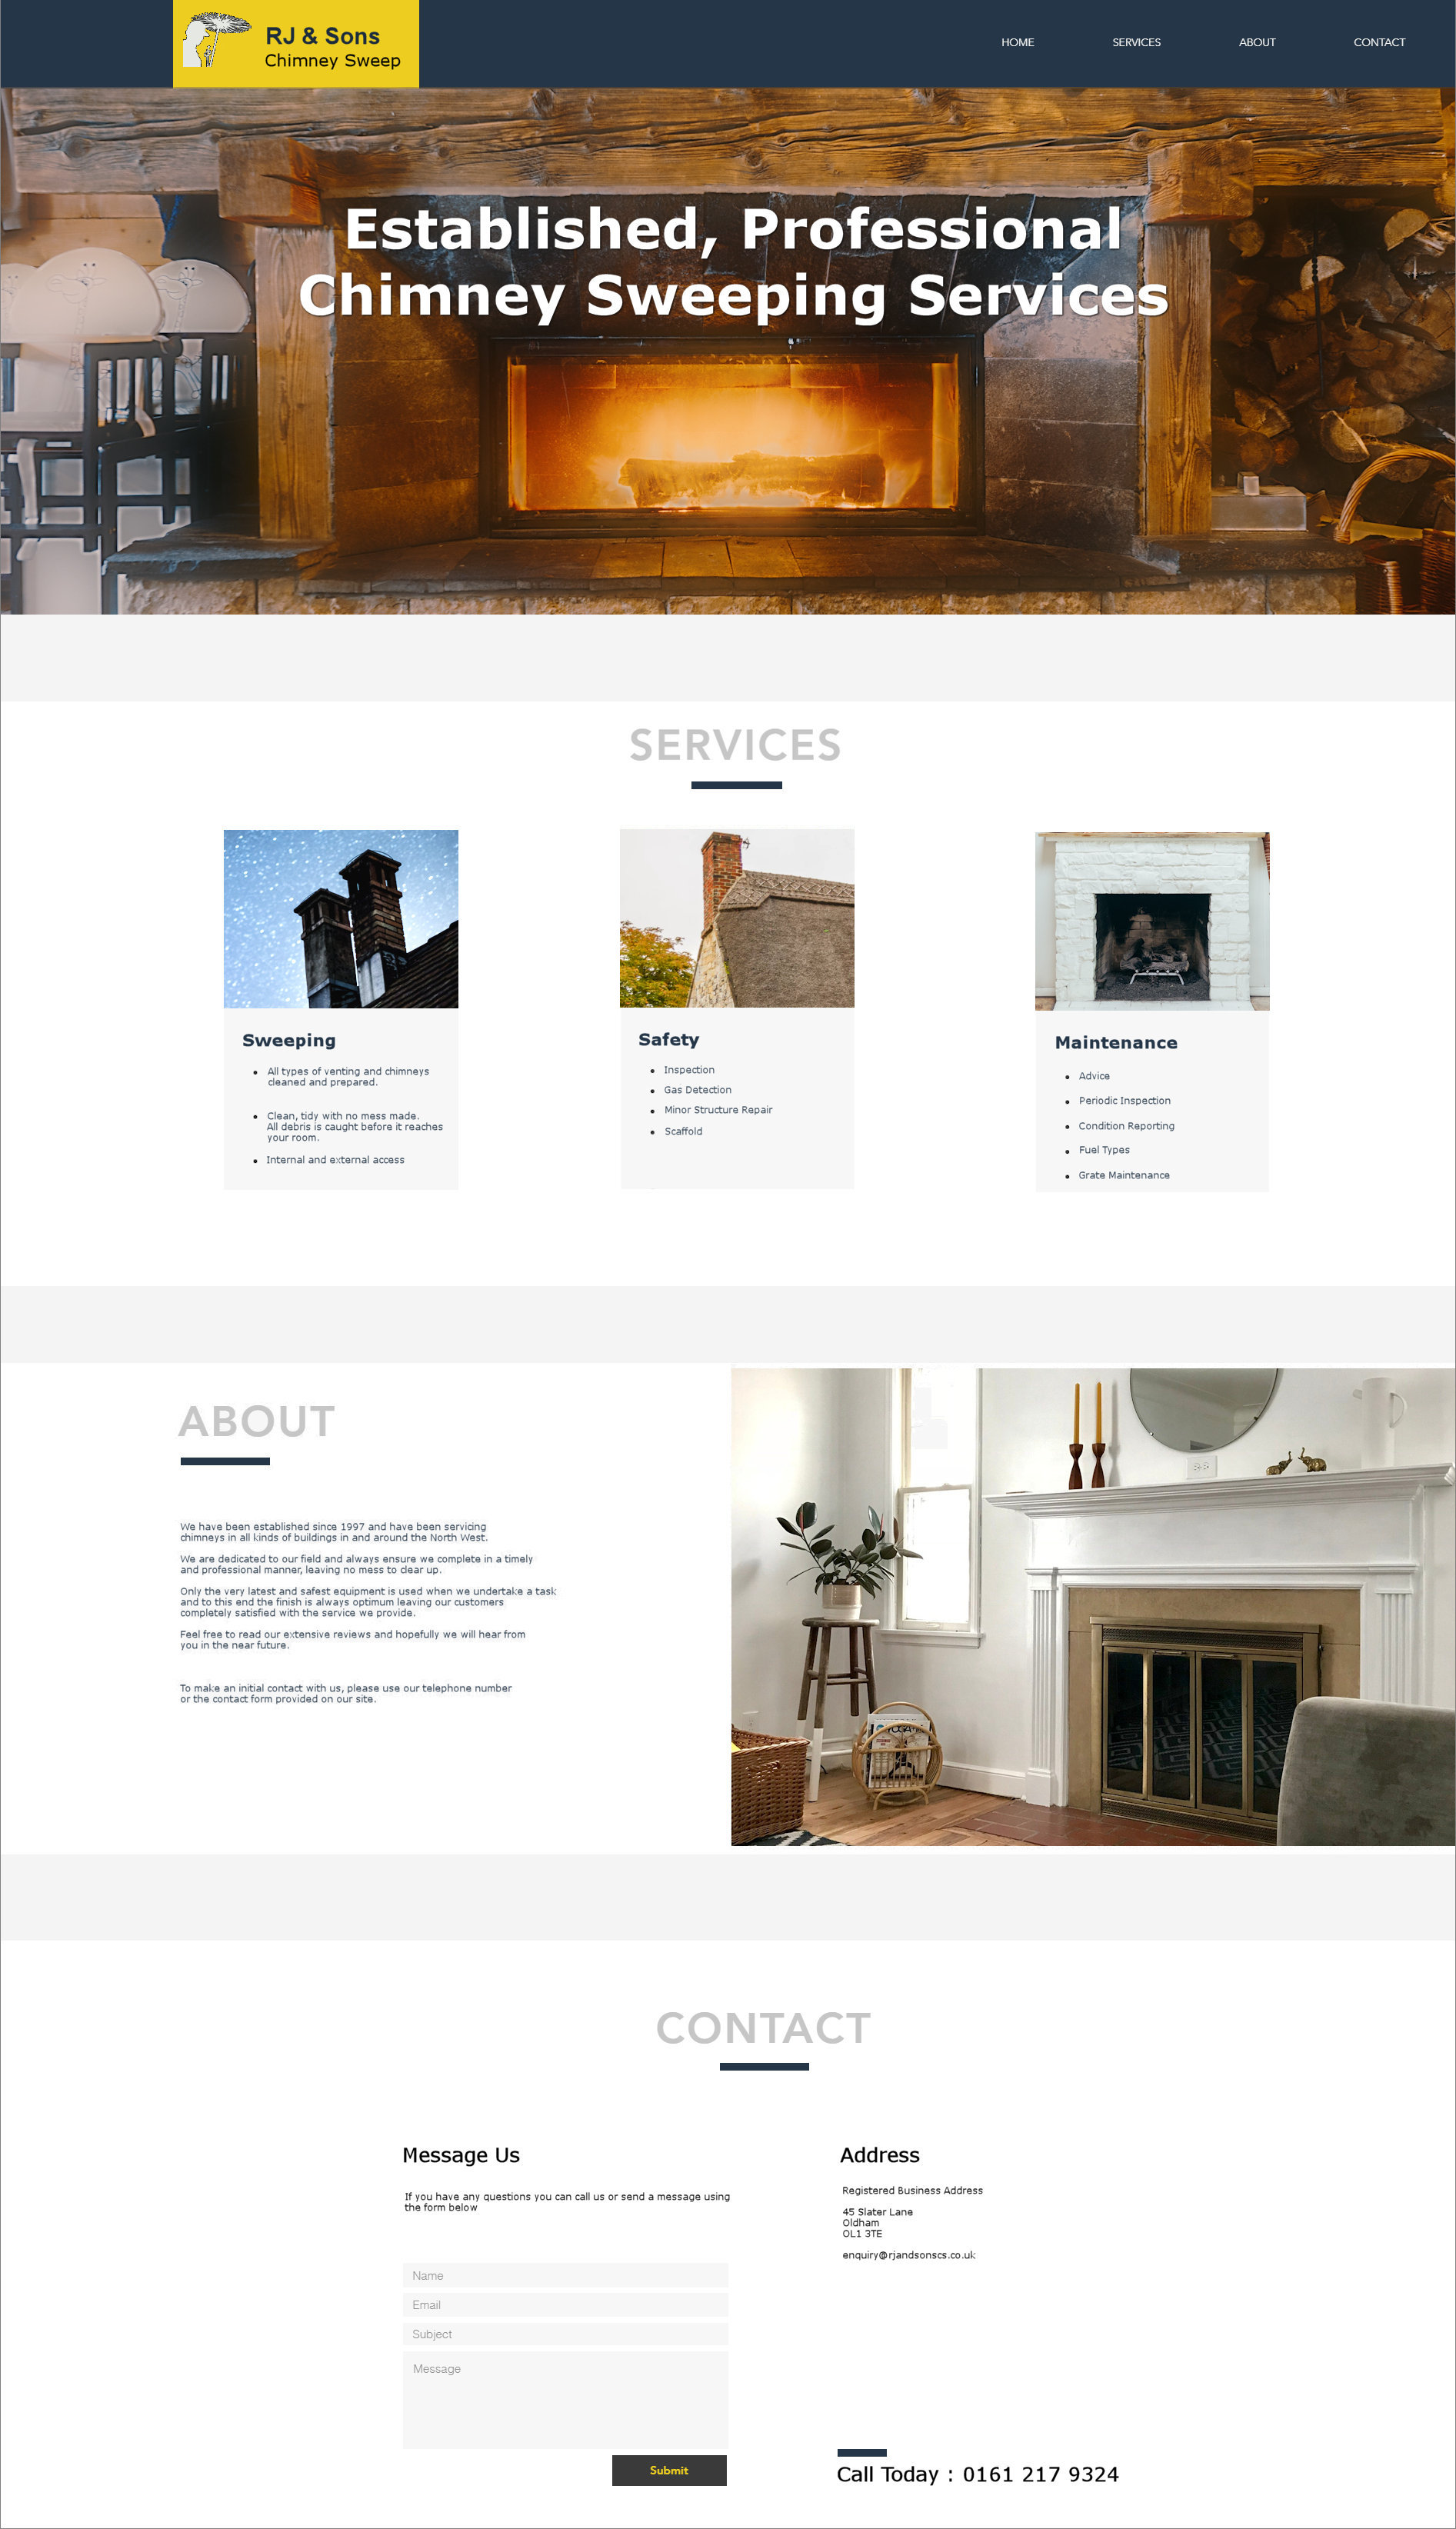 Web Design Example for a Chimney Sweep Company